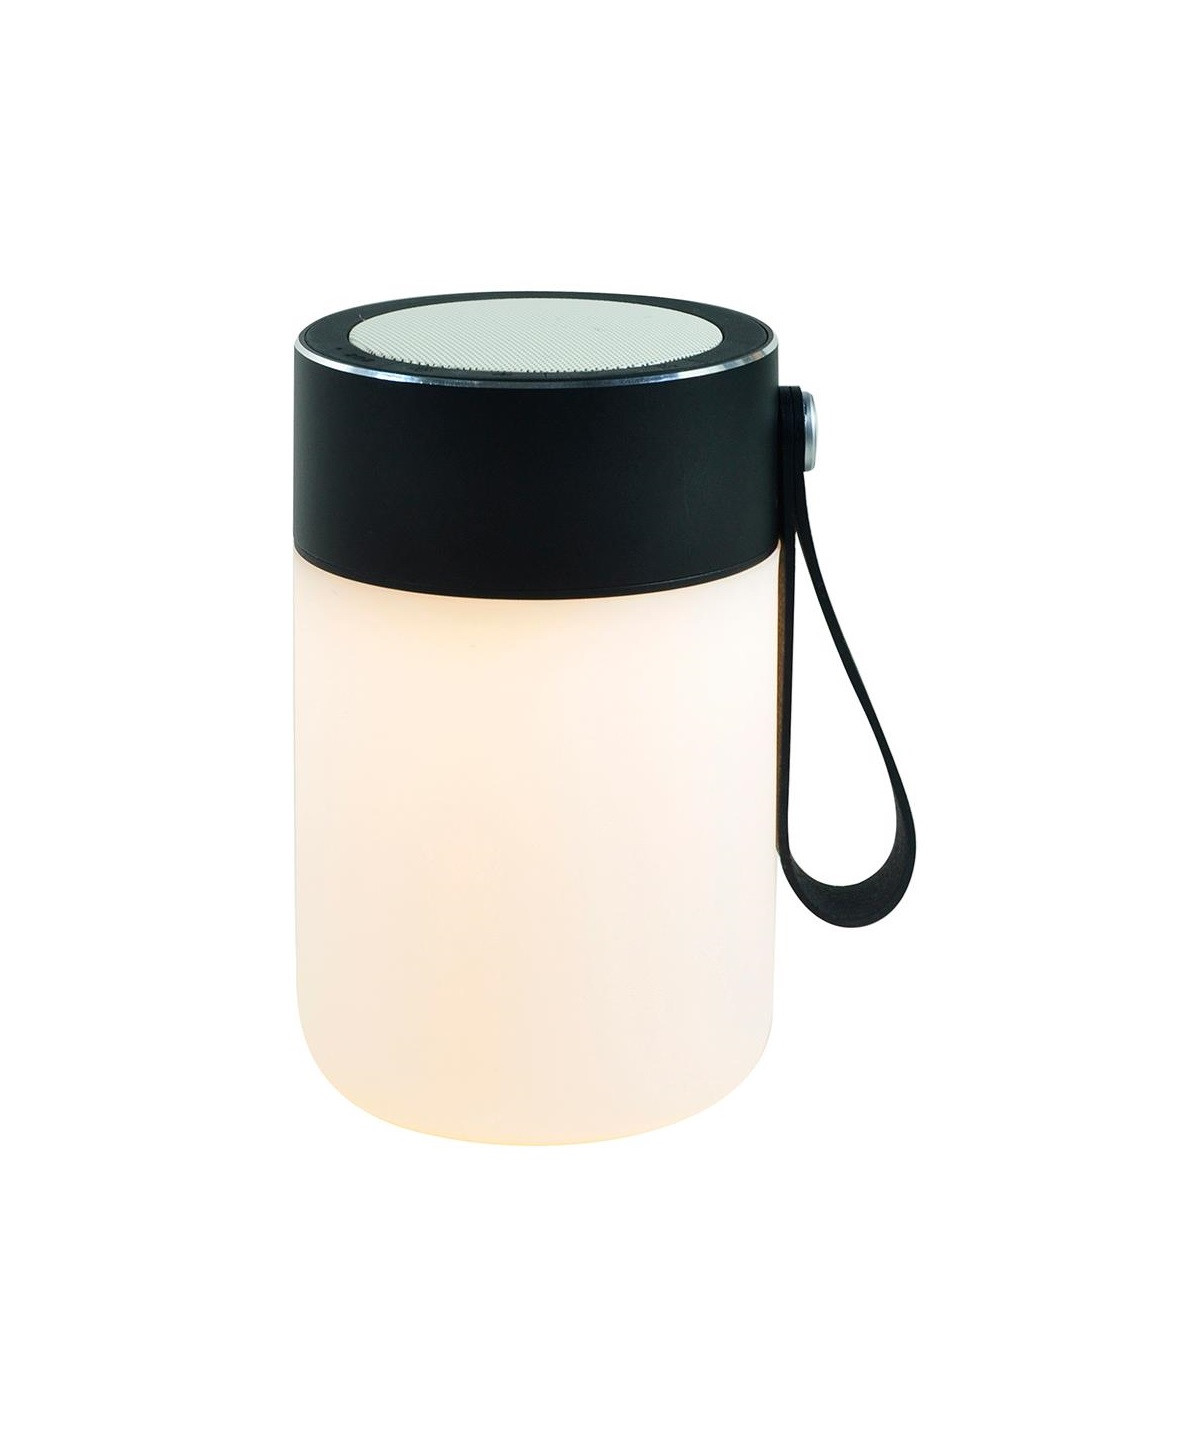 Led sound jar black